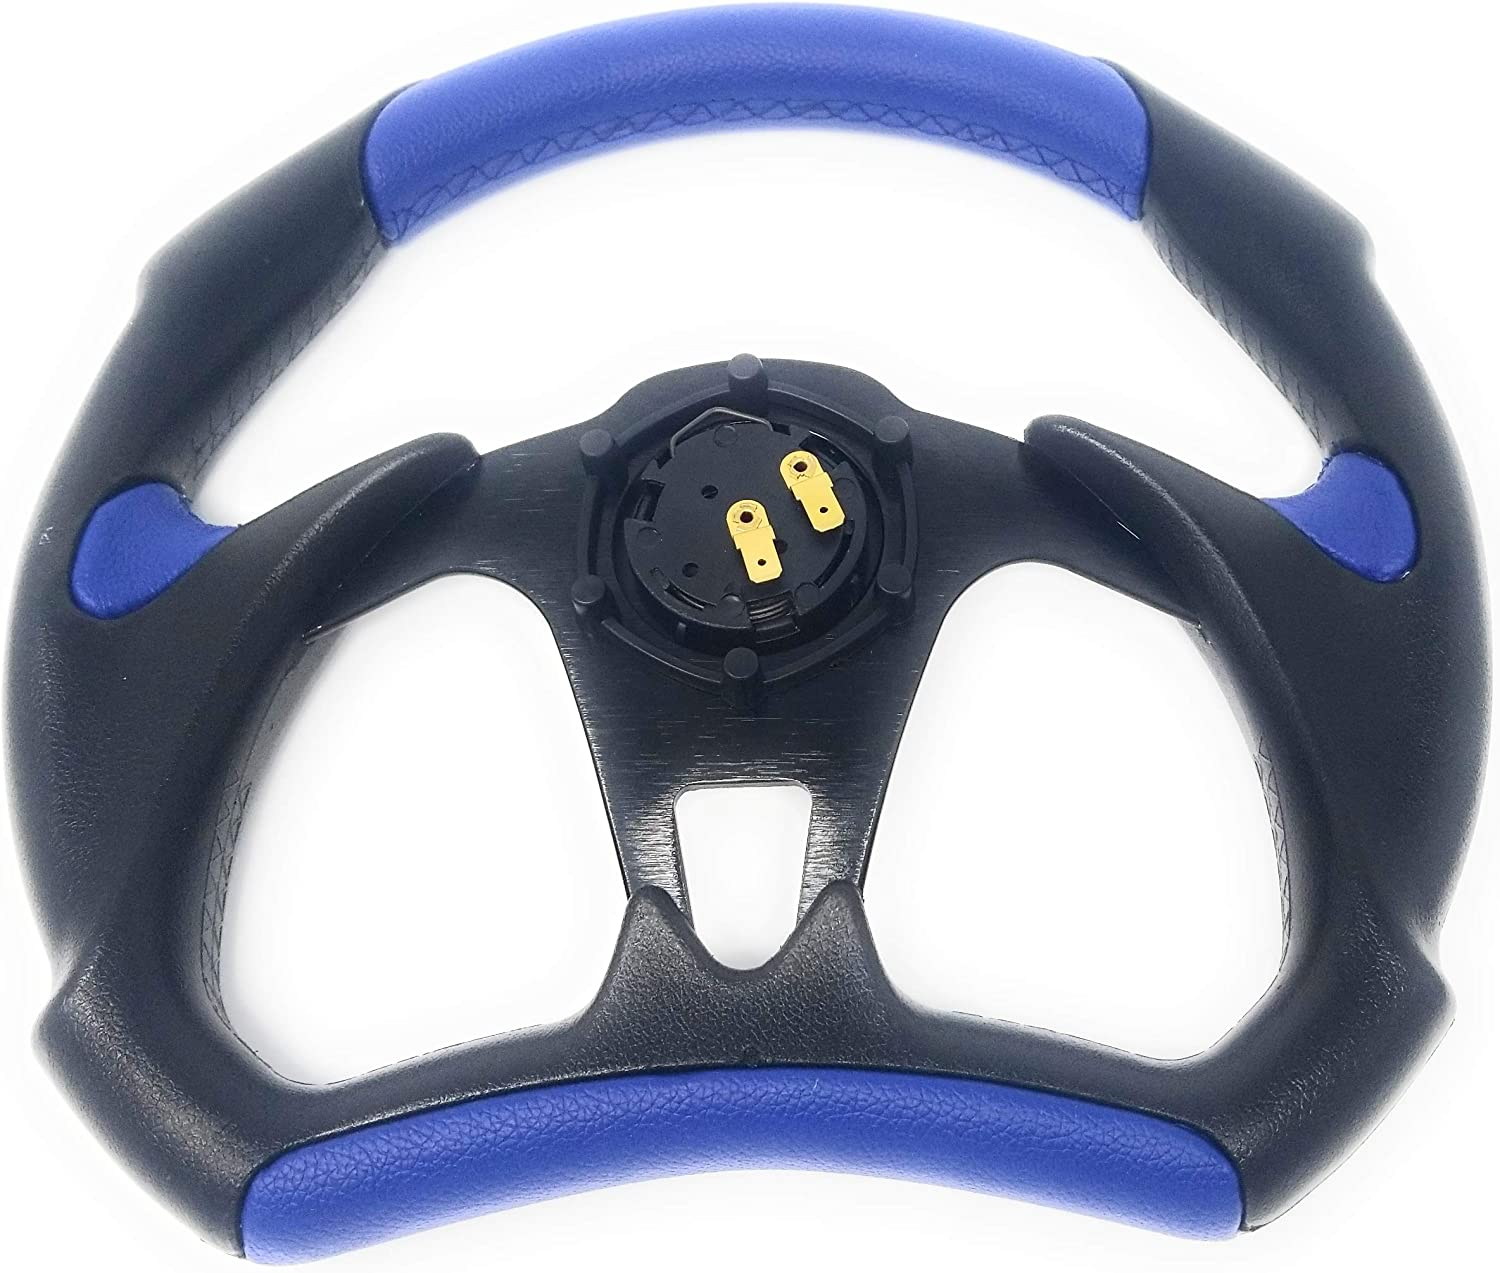 Polaris RZR Steering Wheel with Adapter for 570 800 900 1000 BLUE